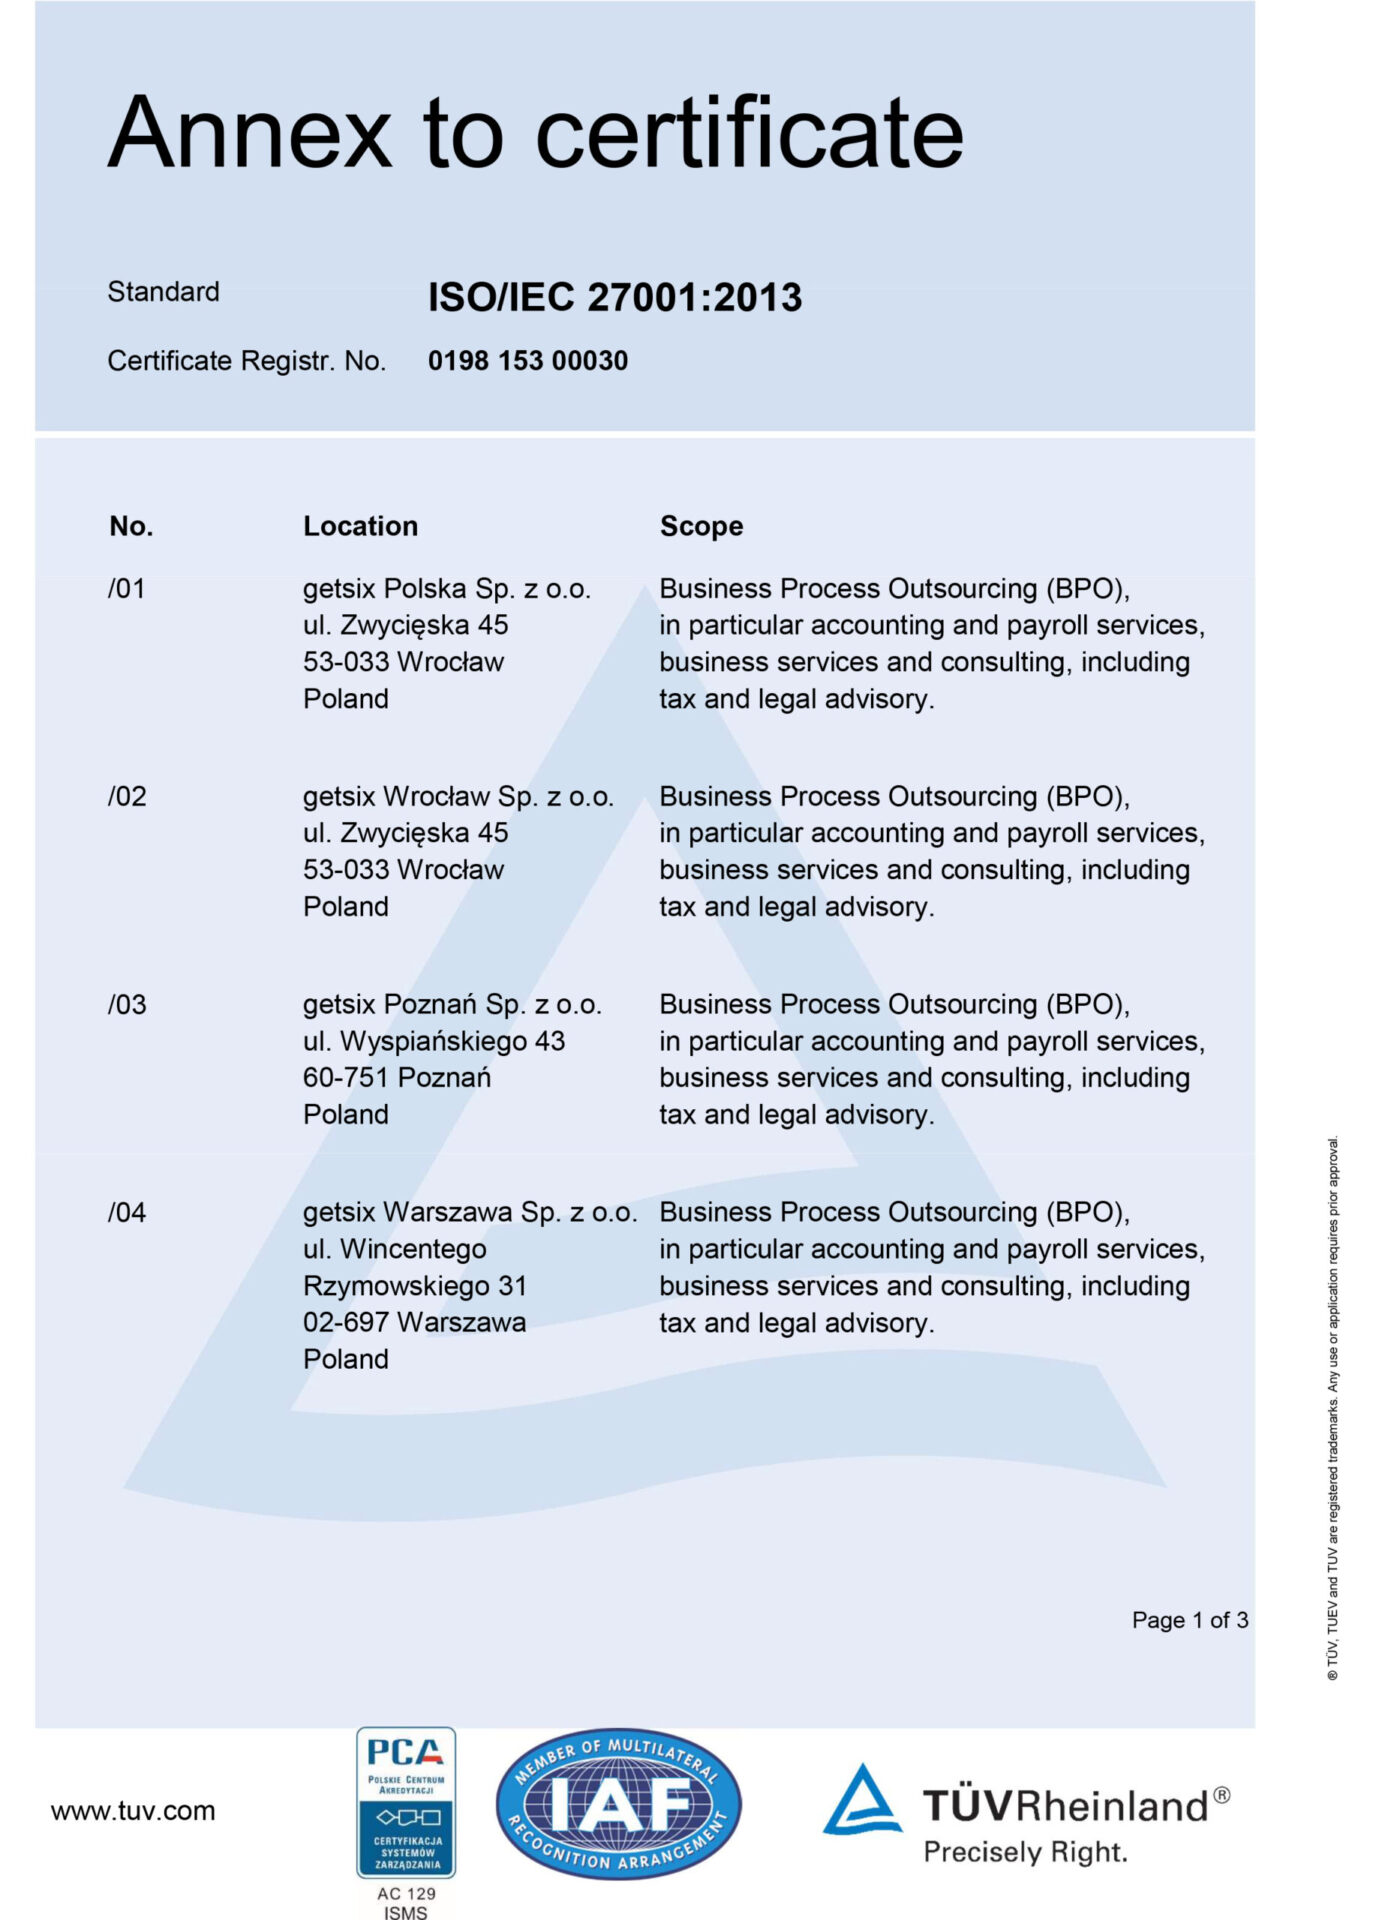 Anex to certificate ISO/IEC 27001:2013 01